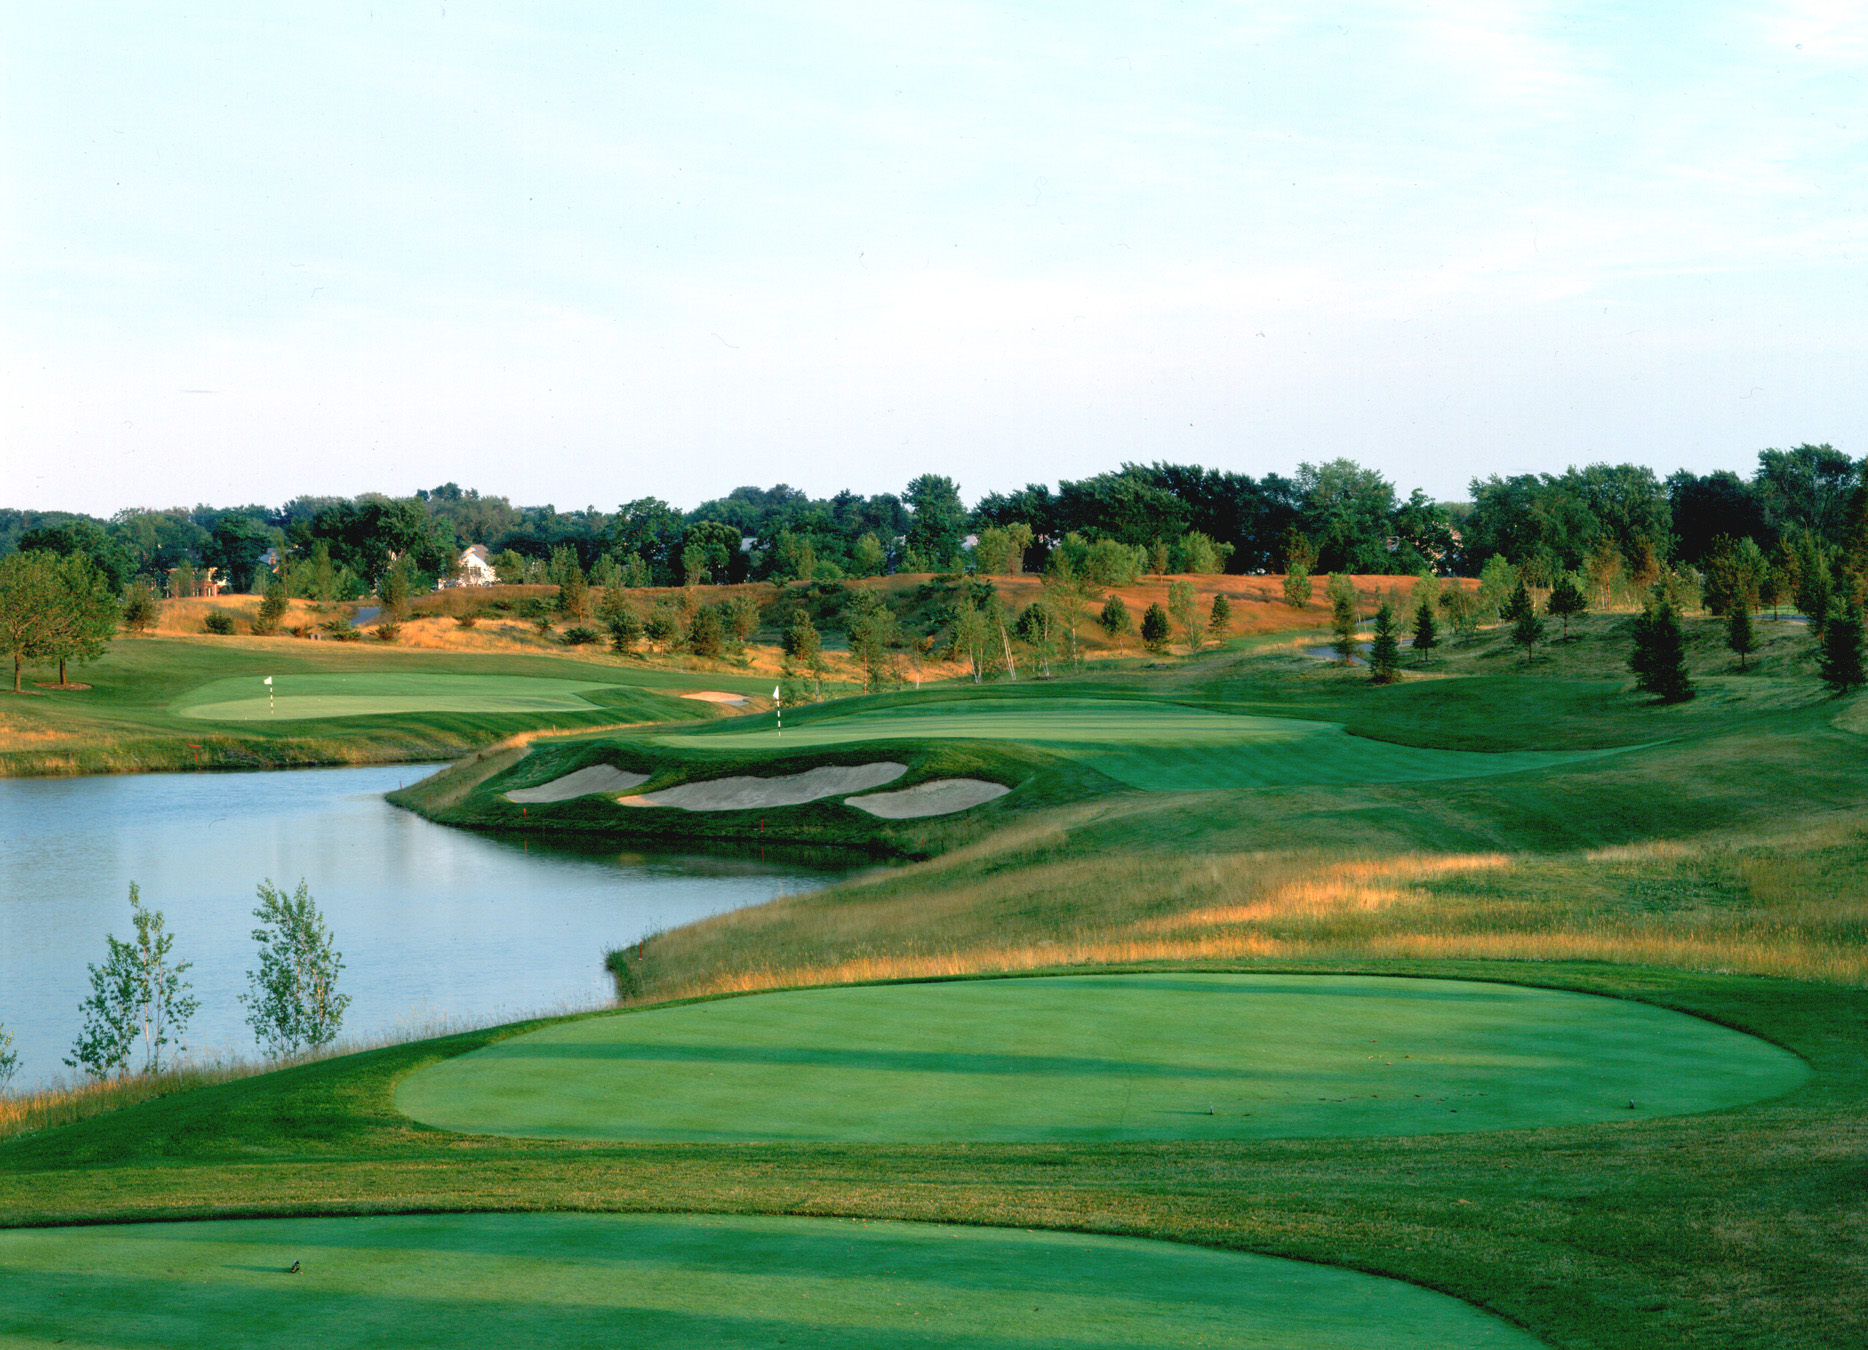 KemperSports, one of the country's foremost sports management companies, added 11 properties to its management portfolio in 2011, joining the likes of Chicago's Glen Club. Photo courtesy KemperSports.